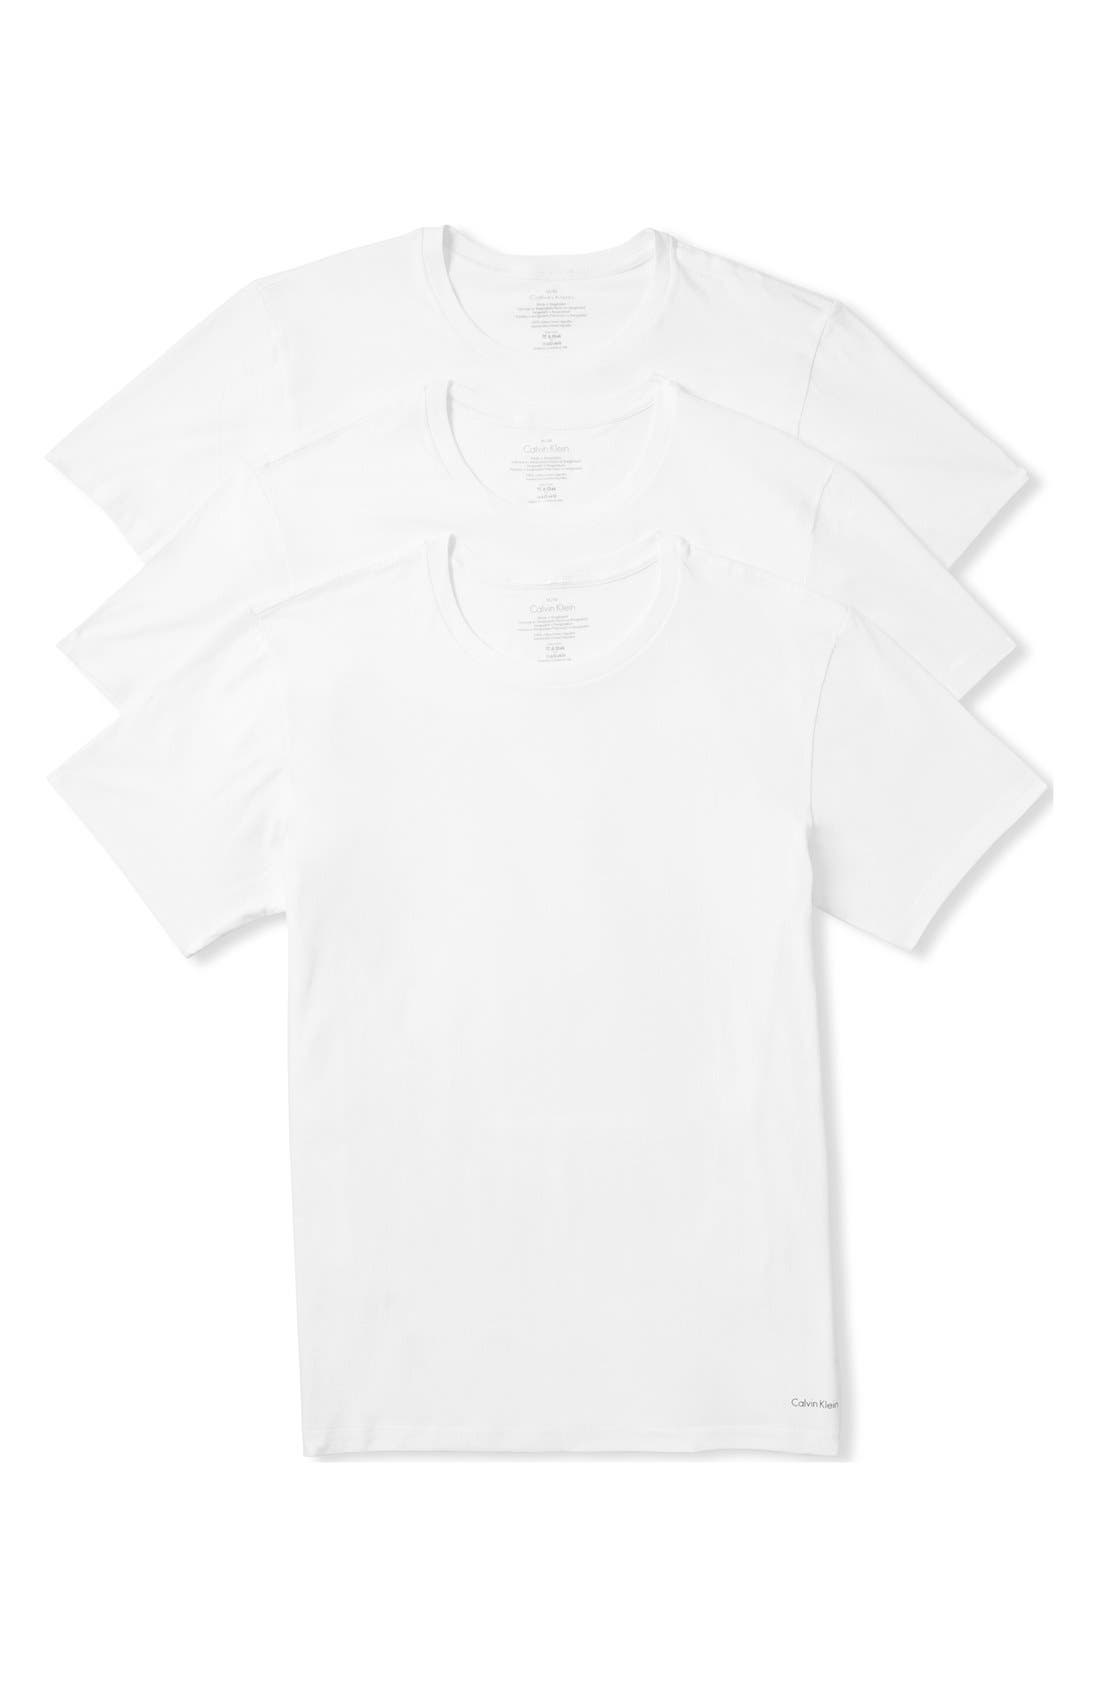 Calvin Klein 3-Pack Cotton T-Shirt